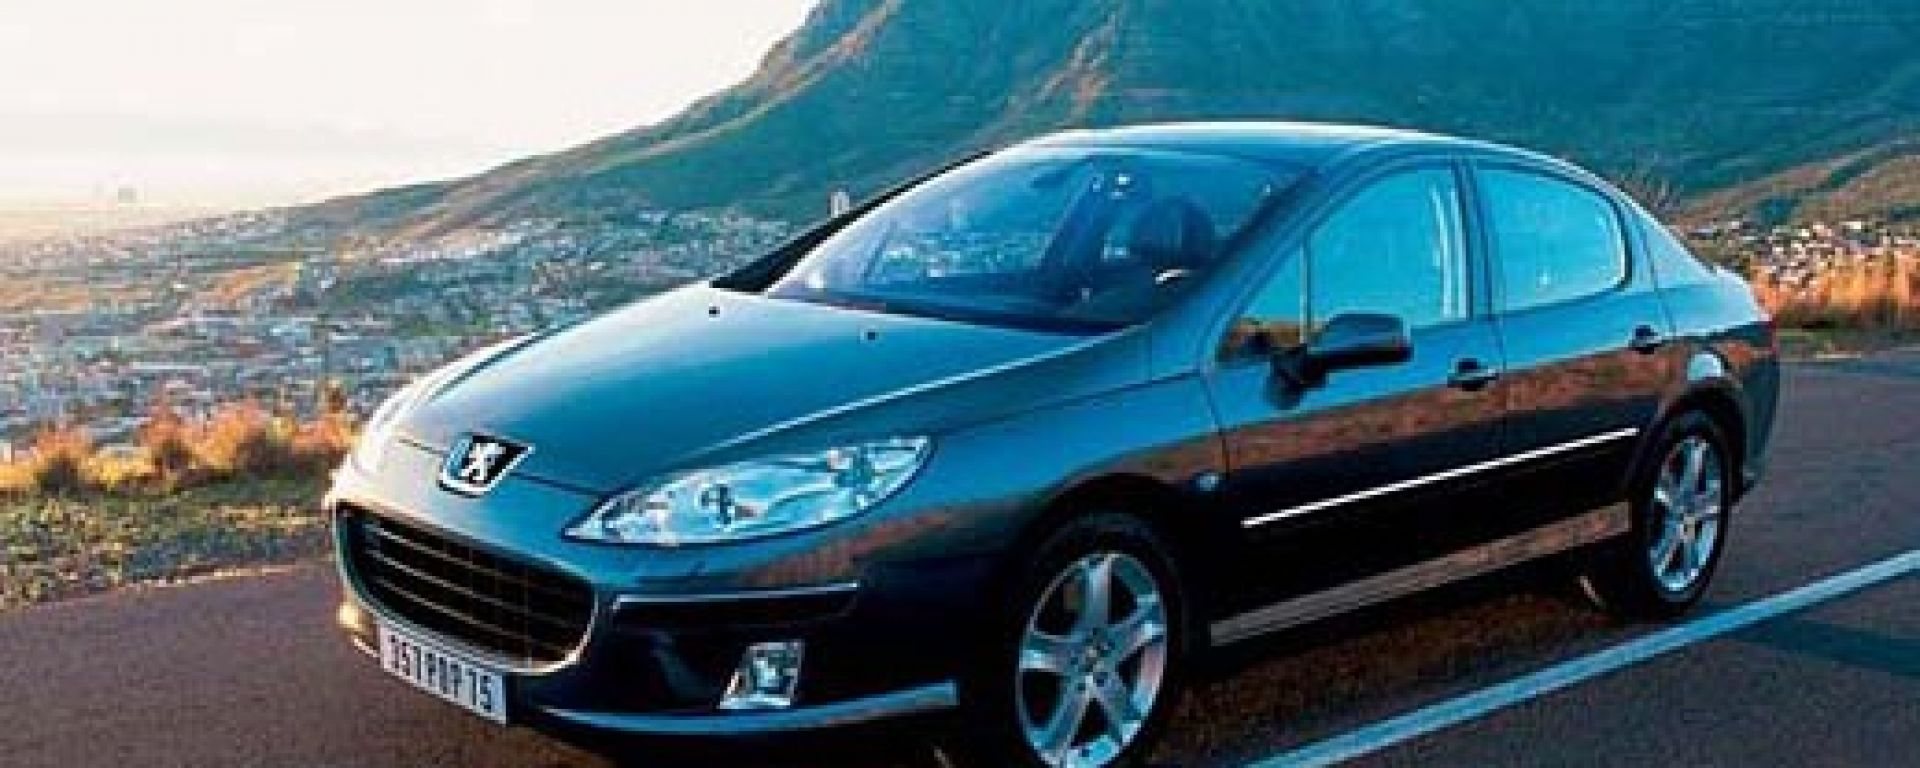 test drive peugeot 407 2 7 hdi v6 motorbox. Black Bedroom Furniture Sets. Home Design Ideas